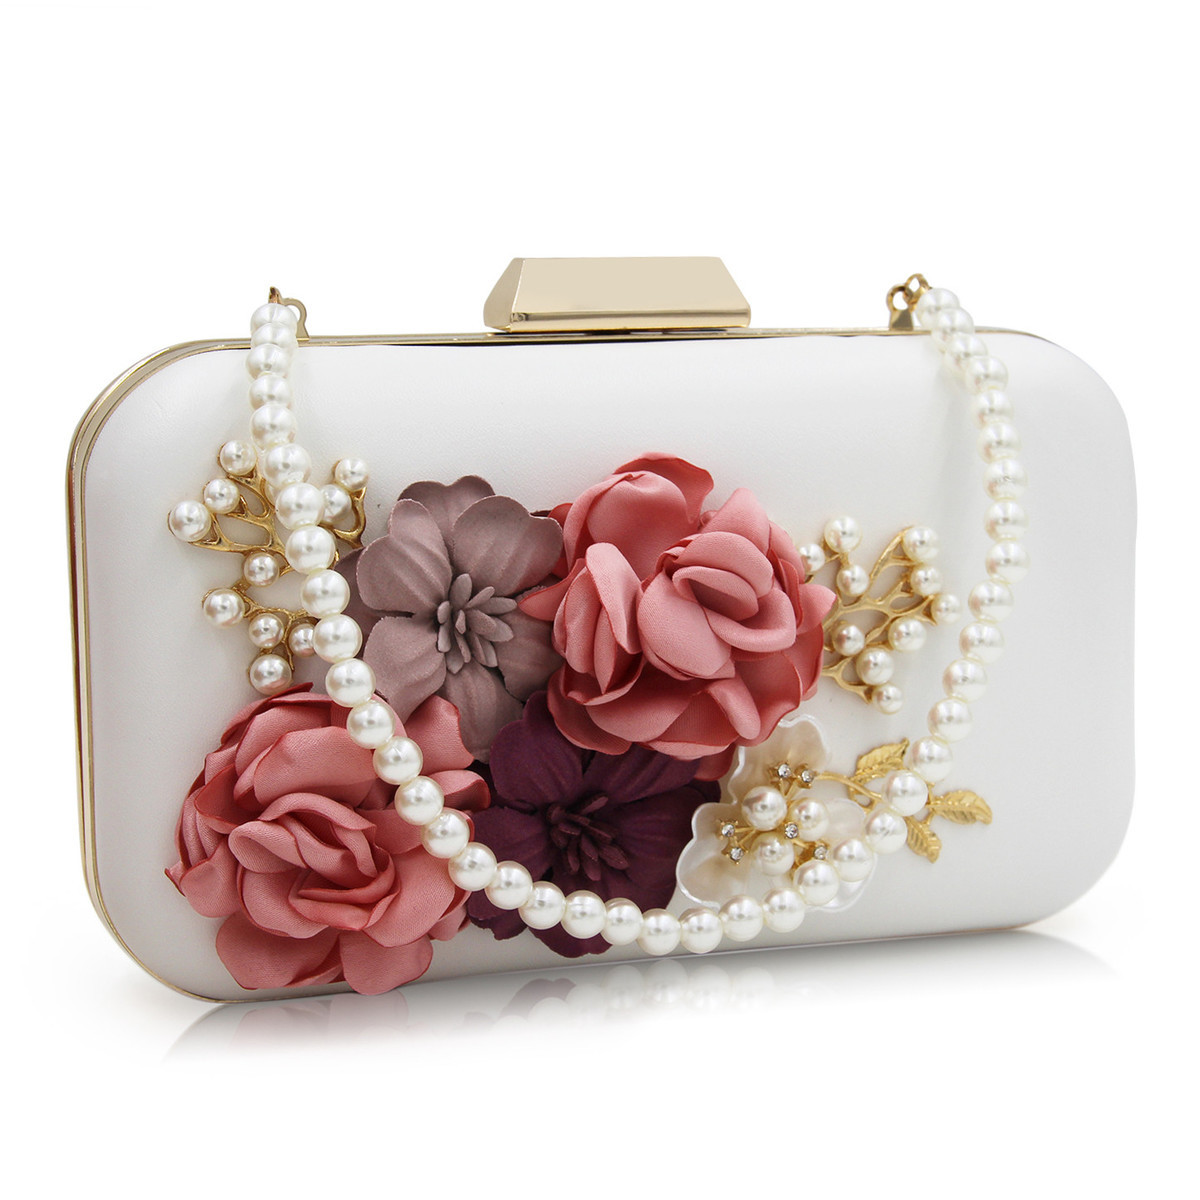 bc47be7cf385 Milisente Women Floral Bags with Pearl Chain Handmade Flower ...